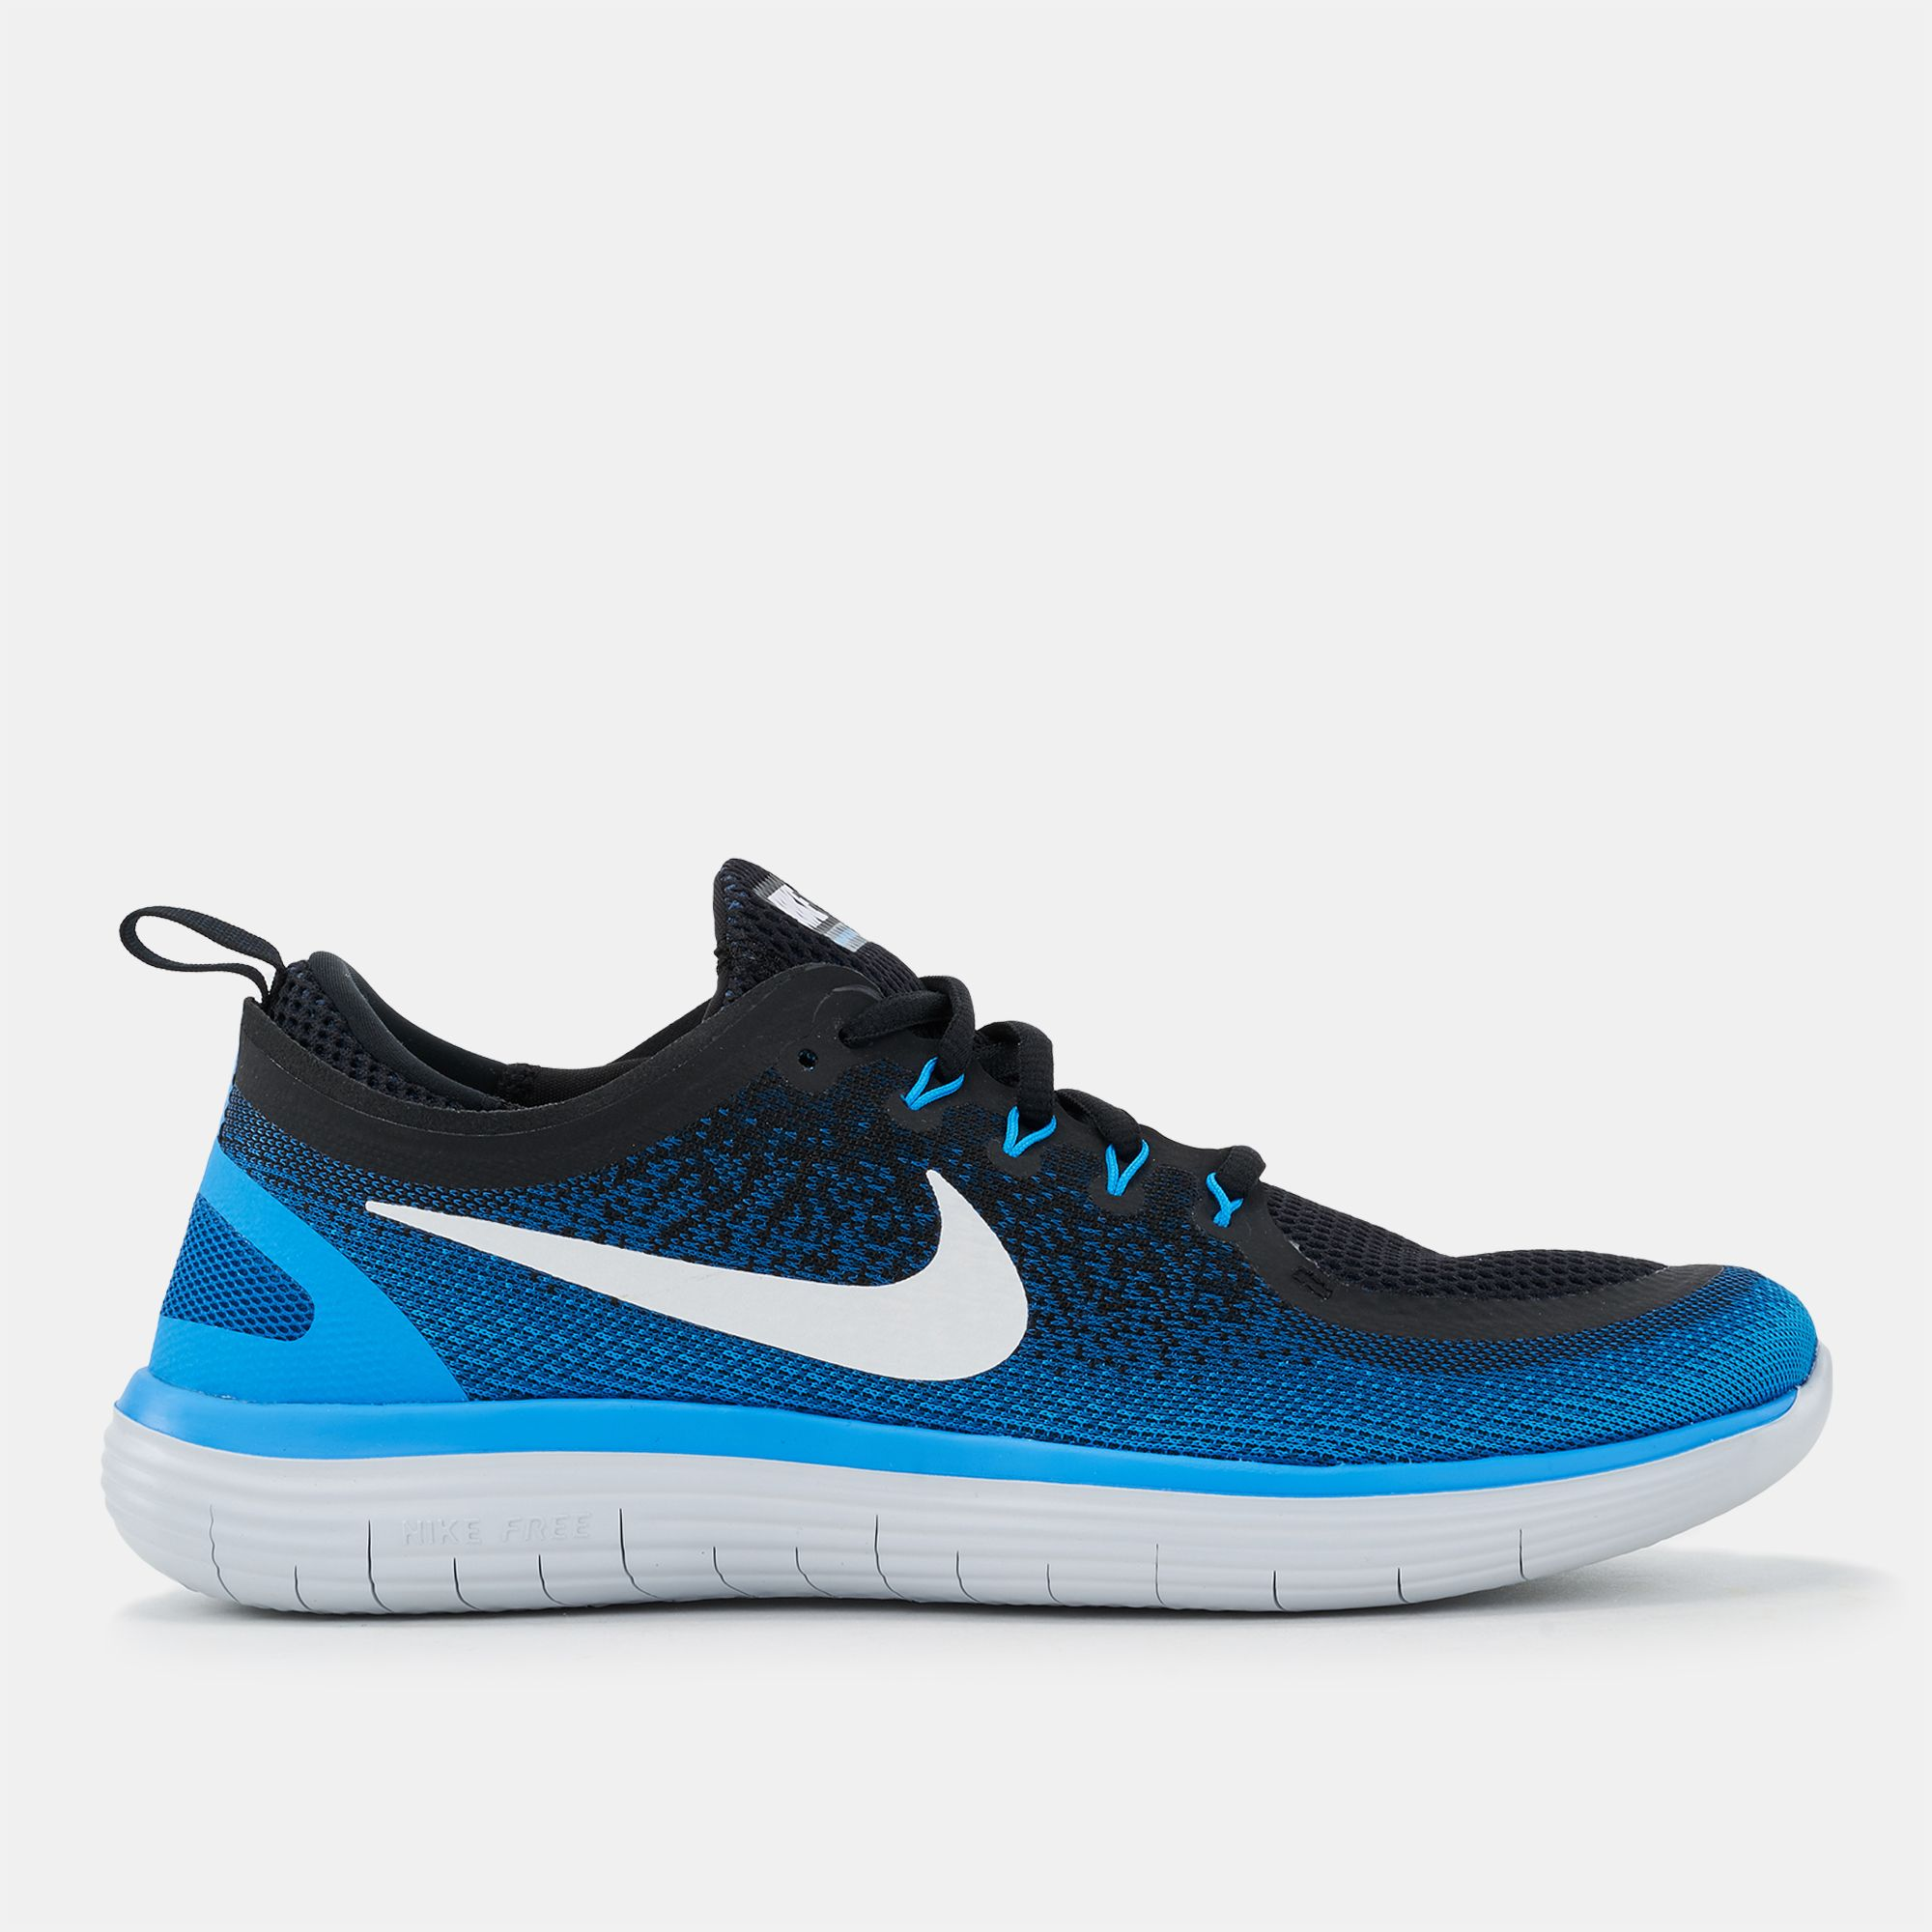 new arrival c1184 12c4d Nike Free RN Distance 2 Running Shoe | Running Shoes | Shoes ...